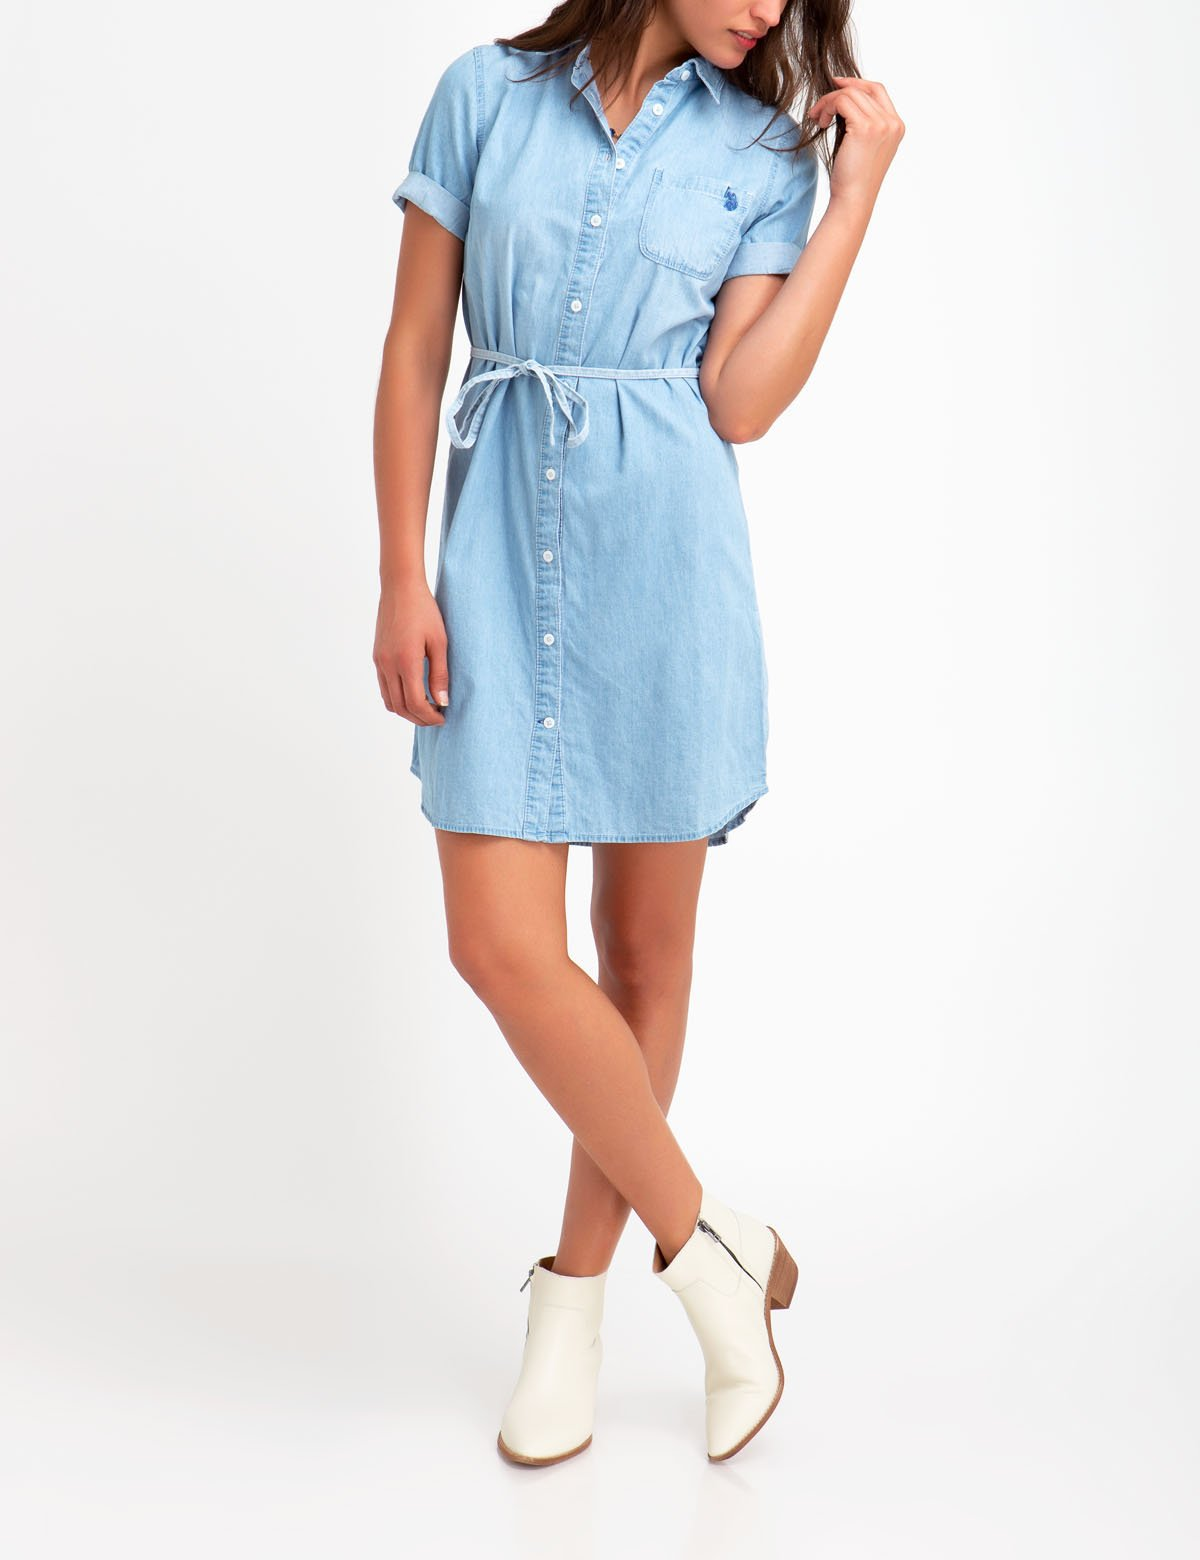 CHAMBRAY SHIRT DRESS - U.S. Polo Assn.